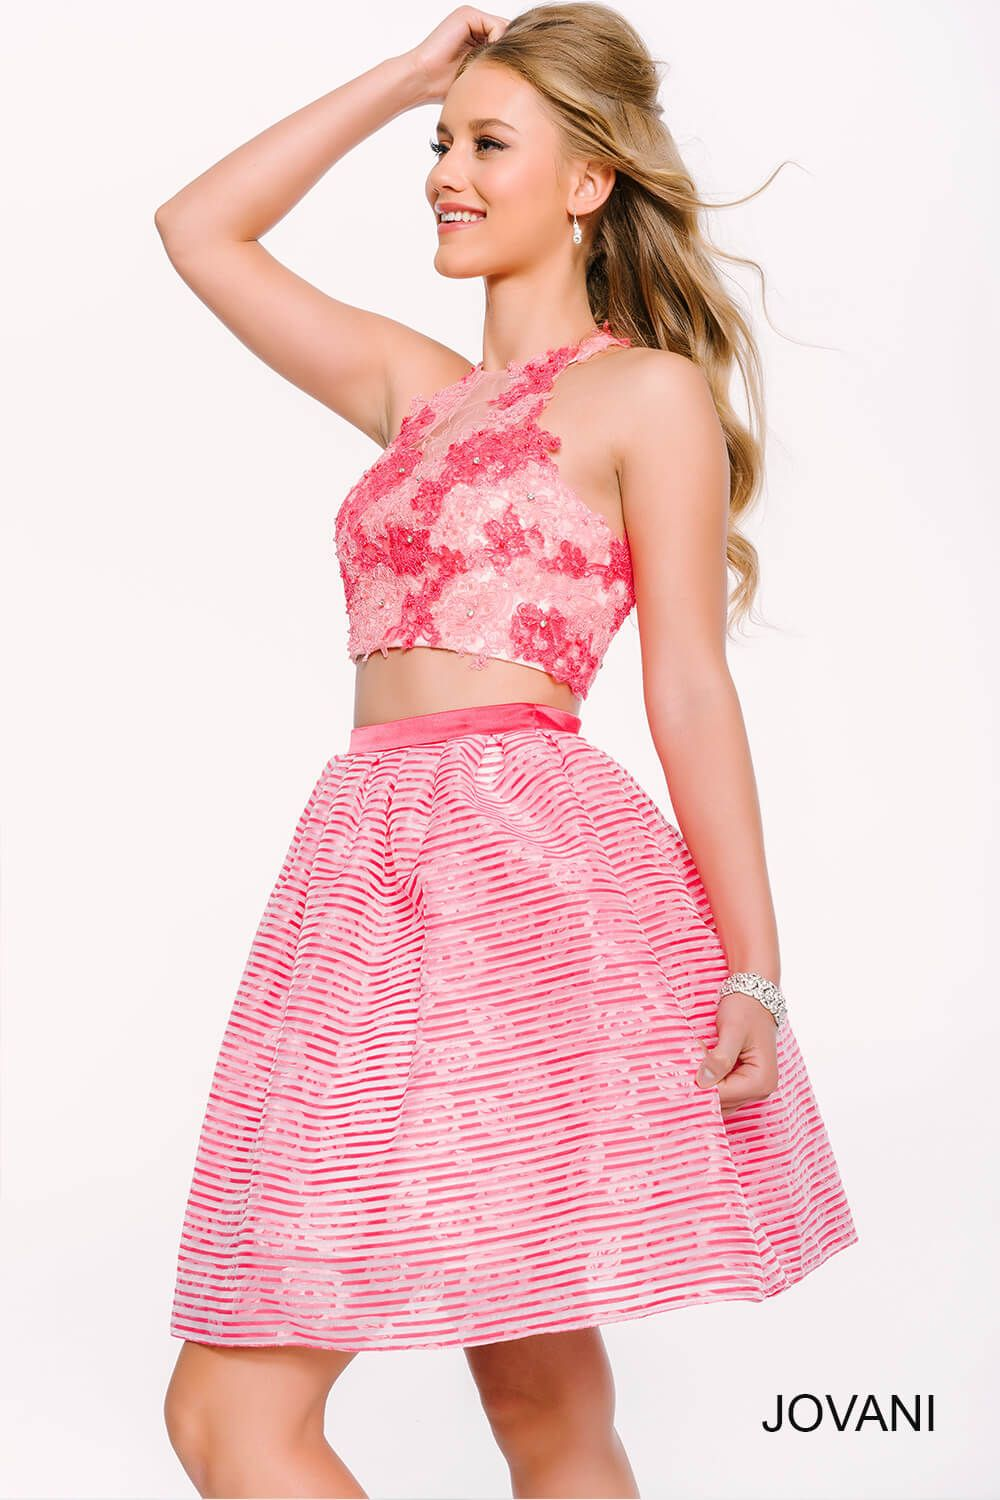 Whatus better than this jovani two piece floral dress